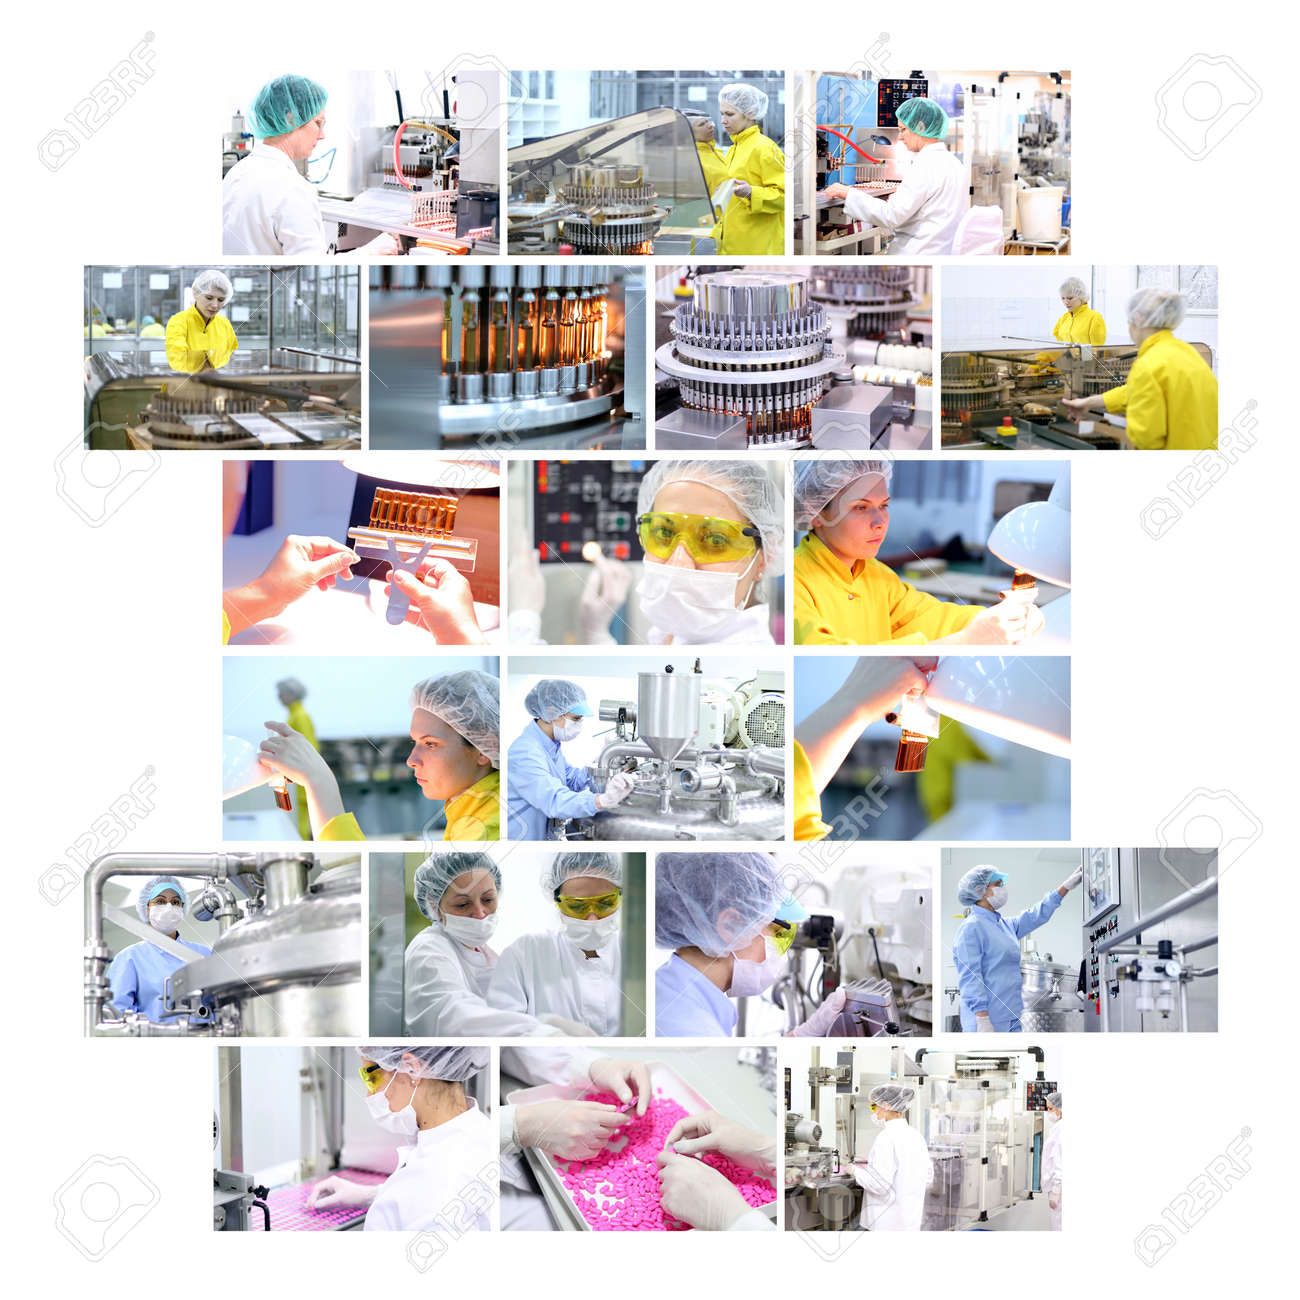 Industrial collage showing workers at work on production of medicines in pharmaceutical factory - vaccines, medicines in ampules, pills, capsules, tablets Stock Photo - 11858987